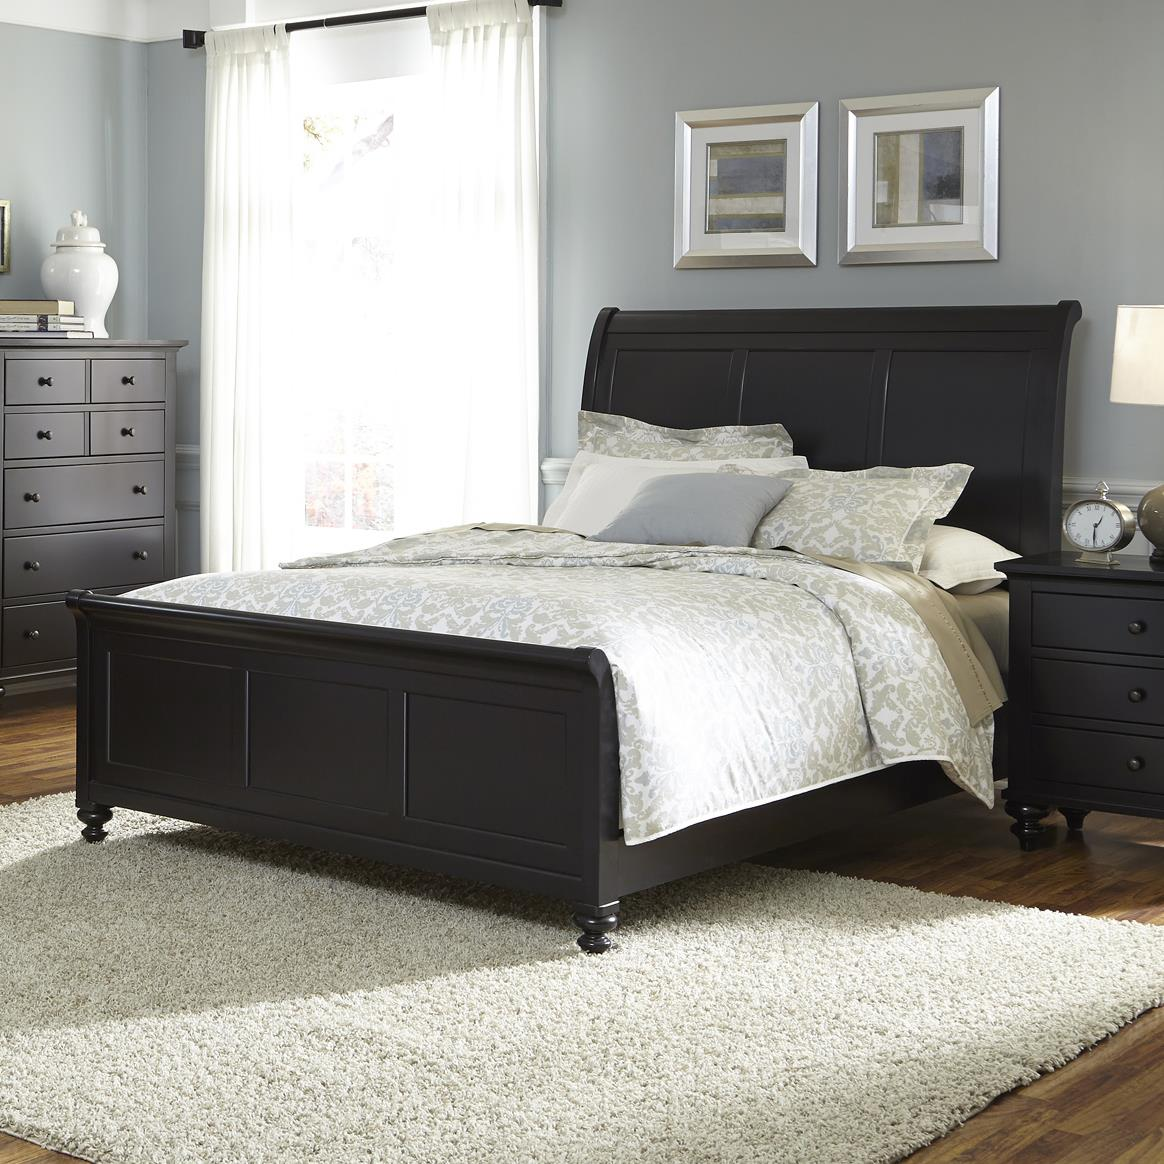 Liberty Furniture Hamilton III Queen Sleigh Bed - Item Number: 441-BR-QSL